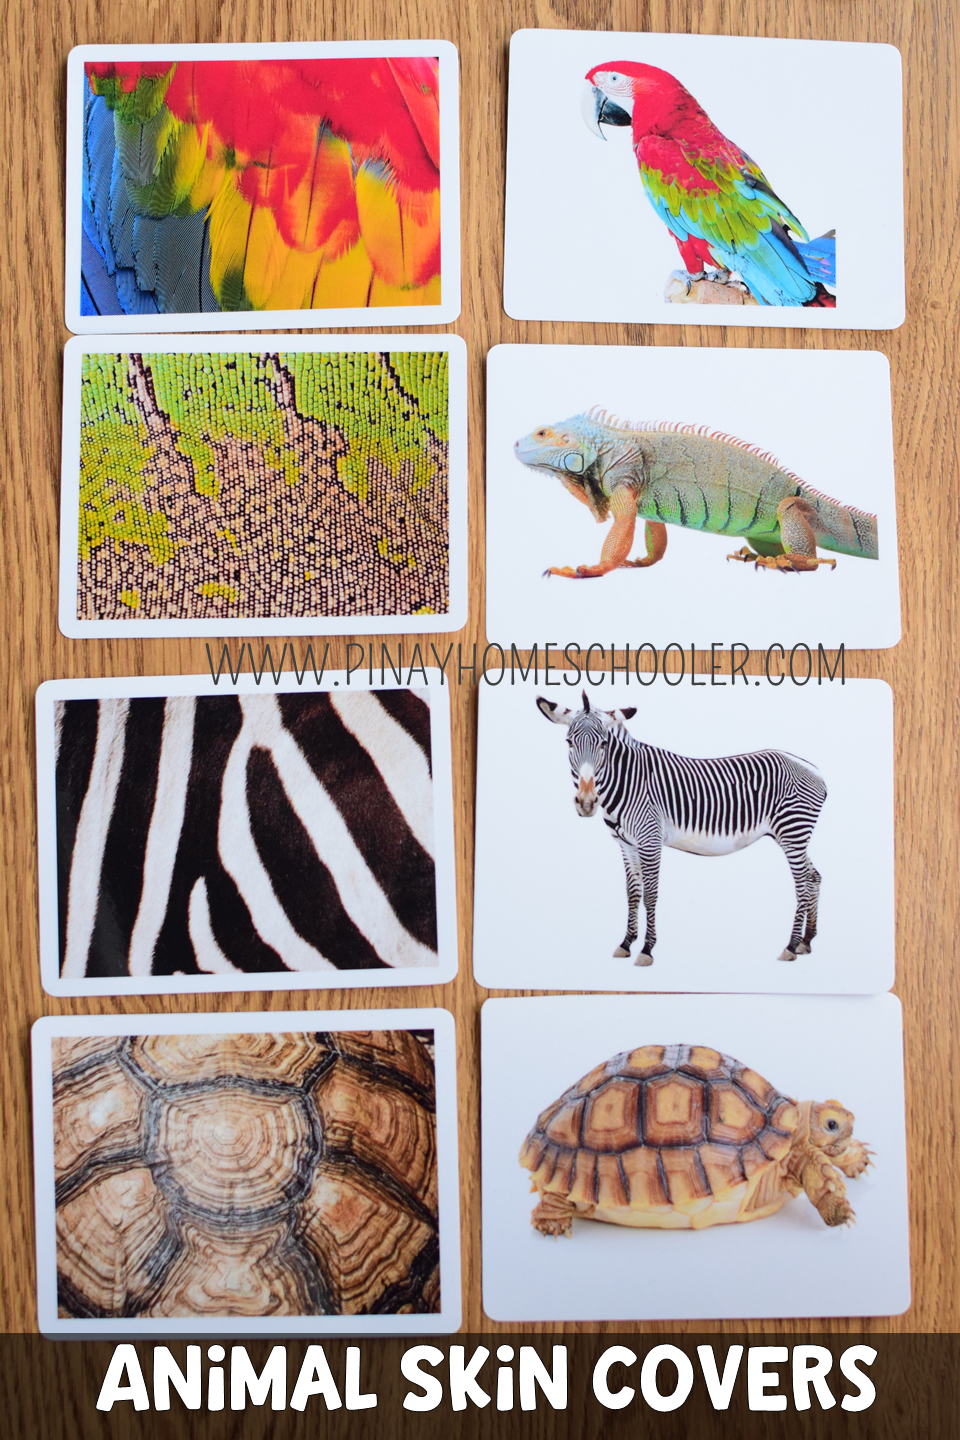 This Is A Montessori Inspired Learning Material Used Mainly For Learning About The Different Skin Animal Covers Kids Can Animal Coverings Animals Animal Skin